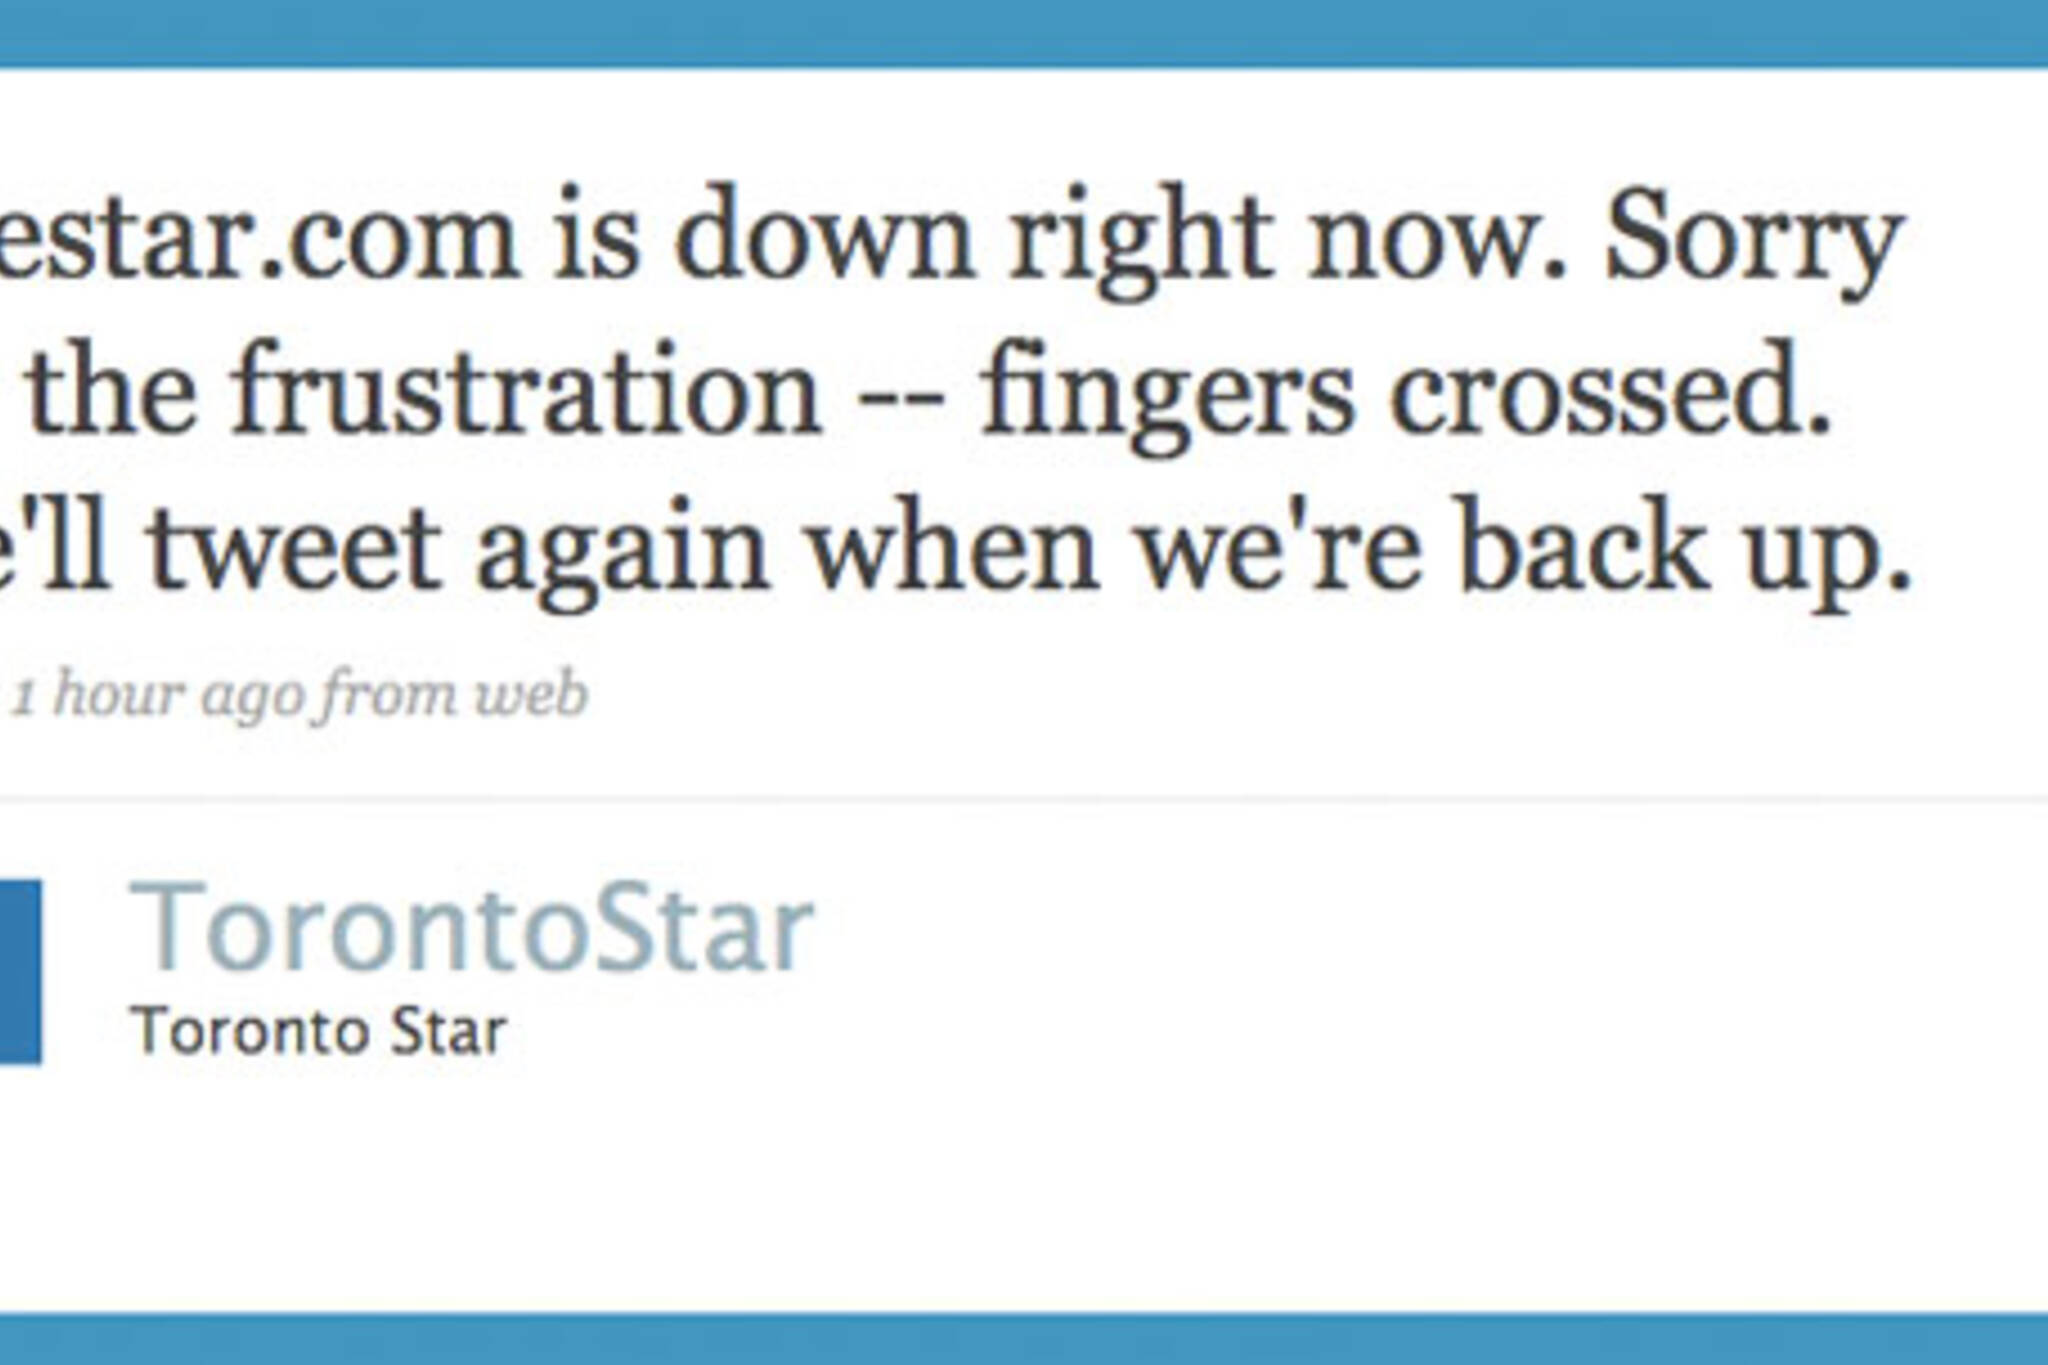 toronto star website down